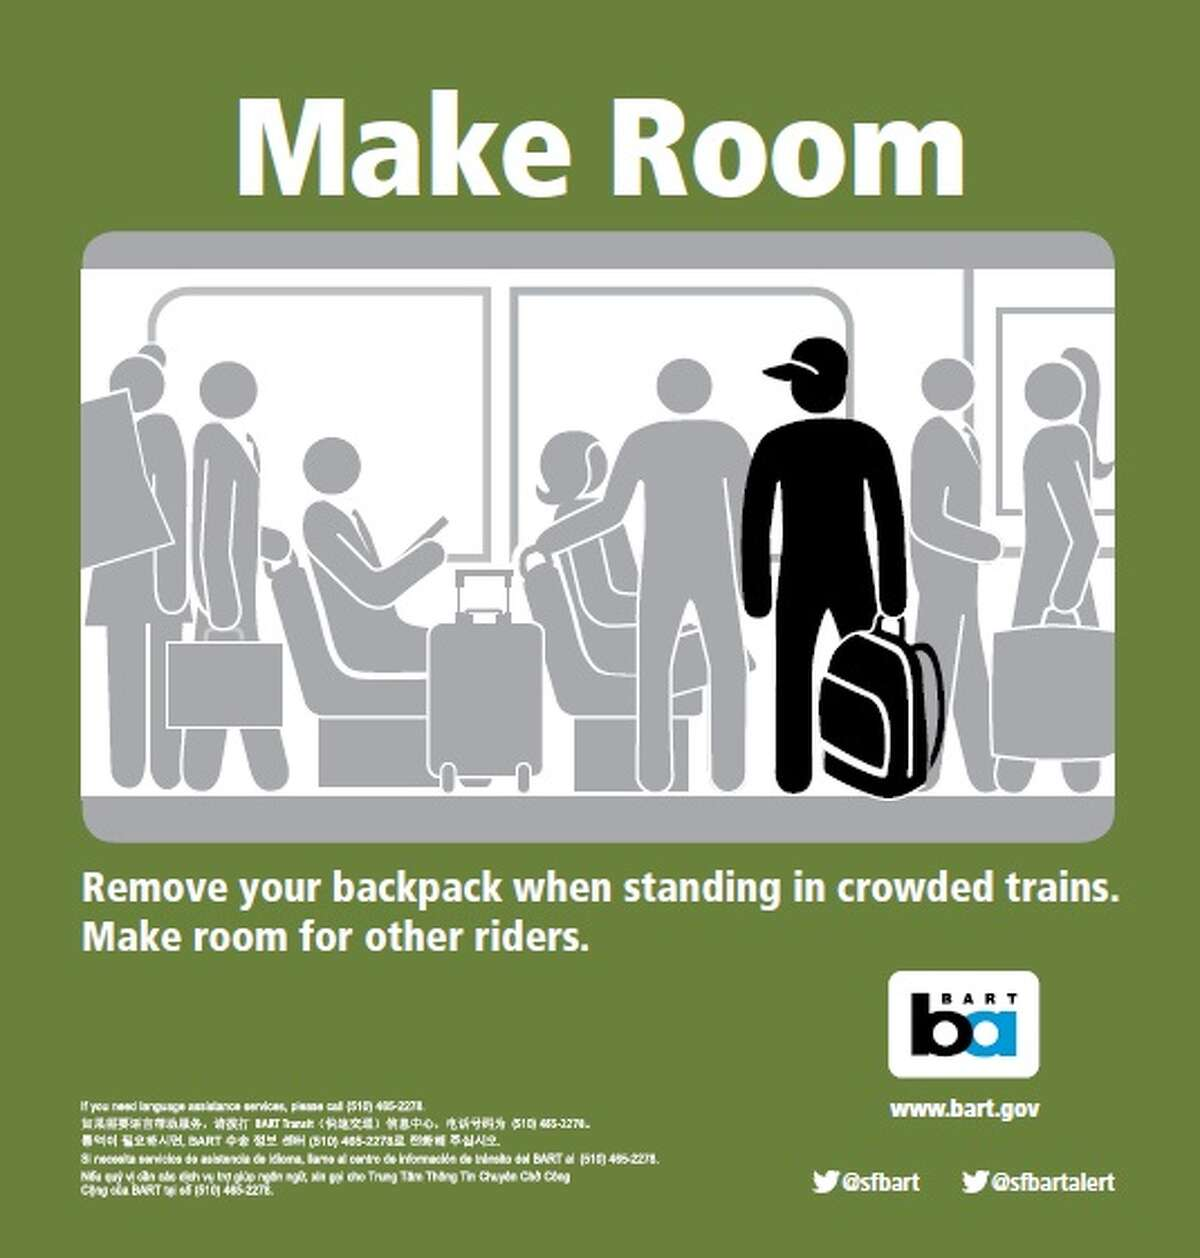 Faced with overcrowded trains, BART launched a public service message campaign to encourage riders to take their backpacks off to make more room for those standing on cars. Photo from February 3rd, 2016.